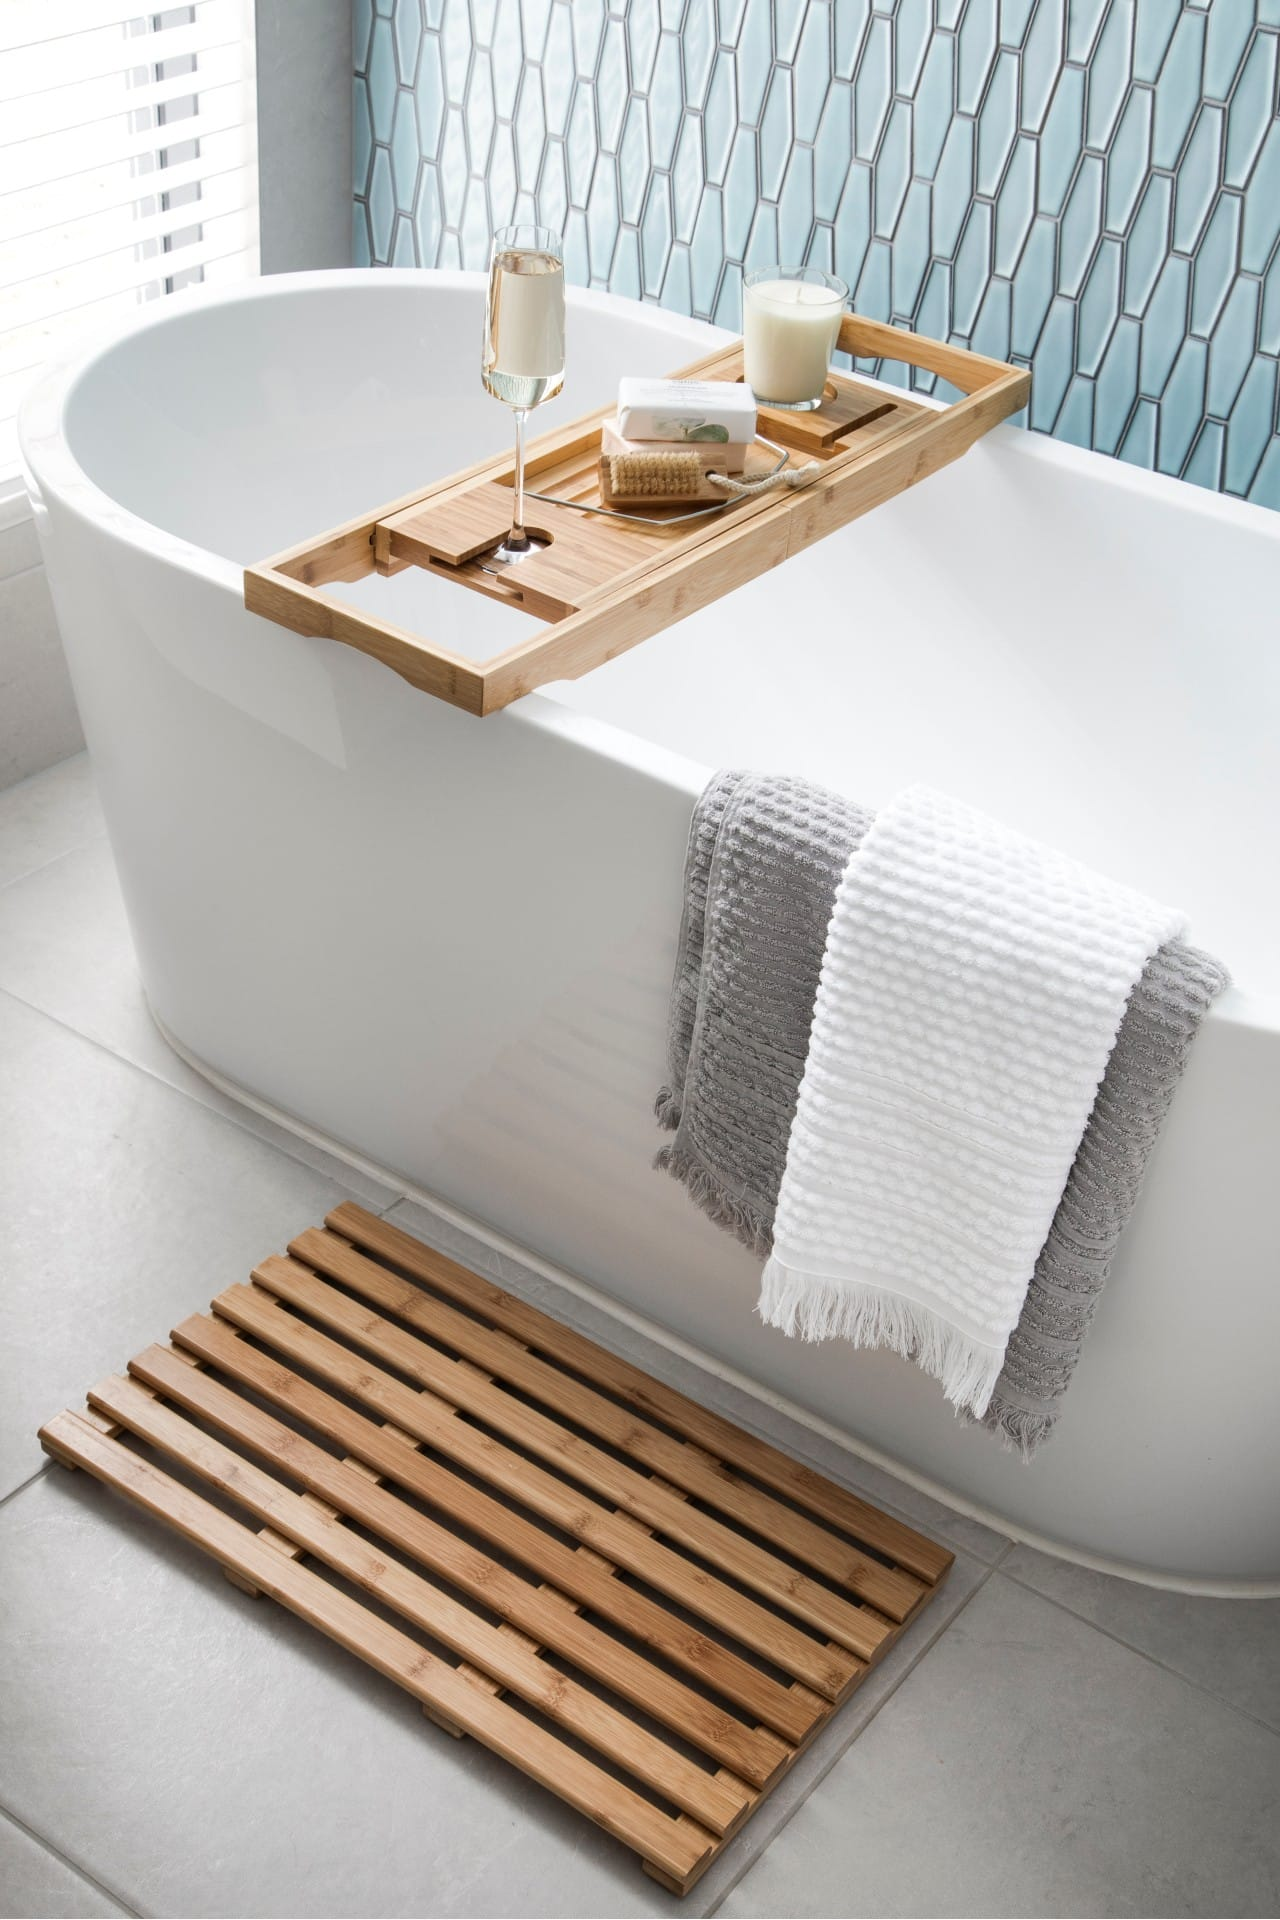 white freestanding bath tub with bamboo bath caddy and floor mat grey and white fringe bath towels